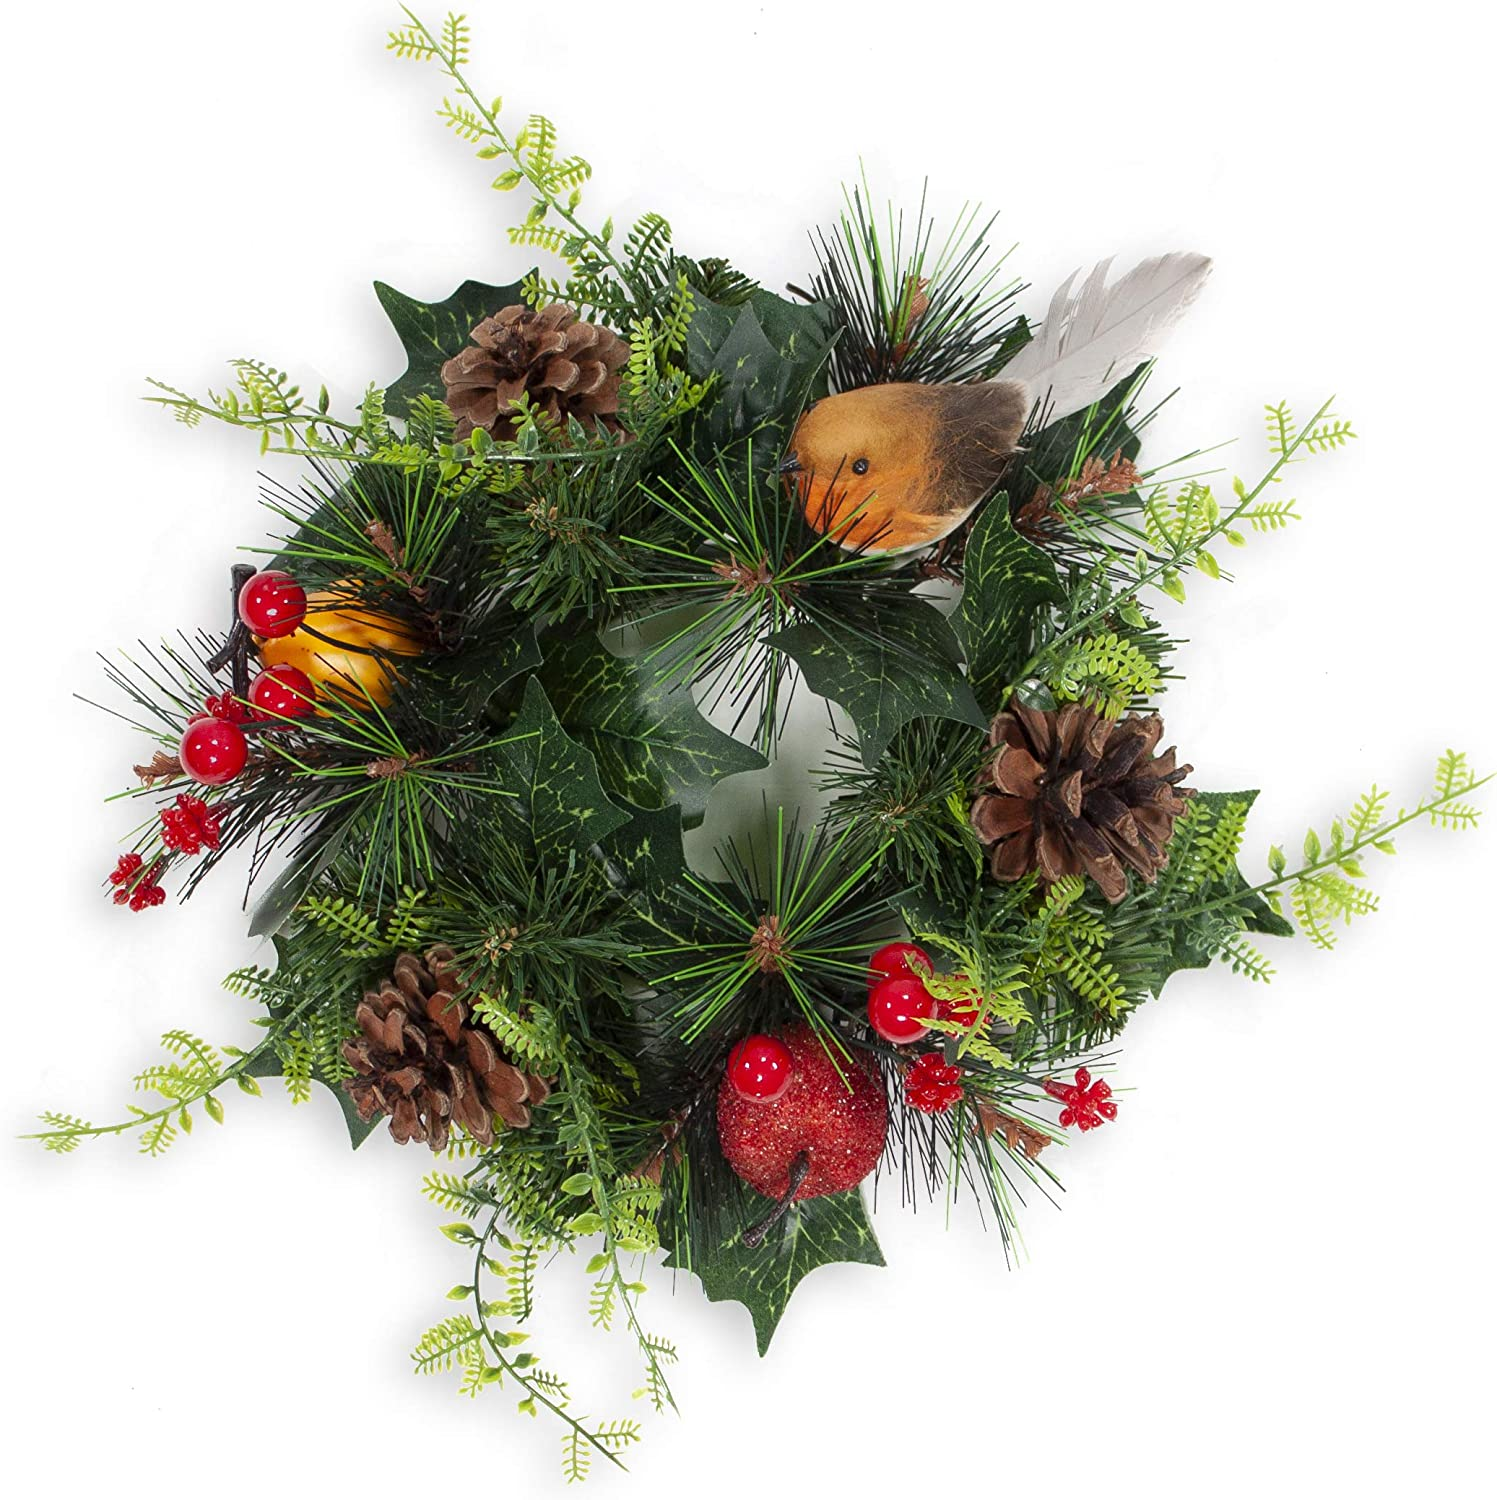 Christmas Candle Wreath - Christmas Candle Holder Ring with Glittery Apples, Pinecones, Red Berries & Bird Decor - 10